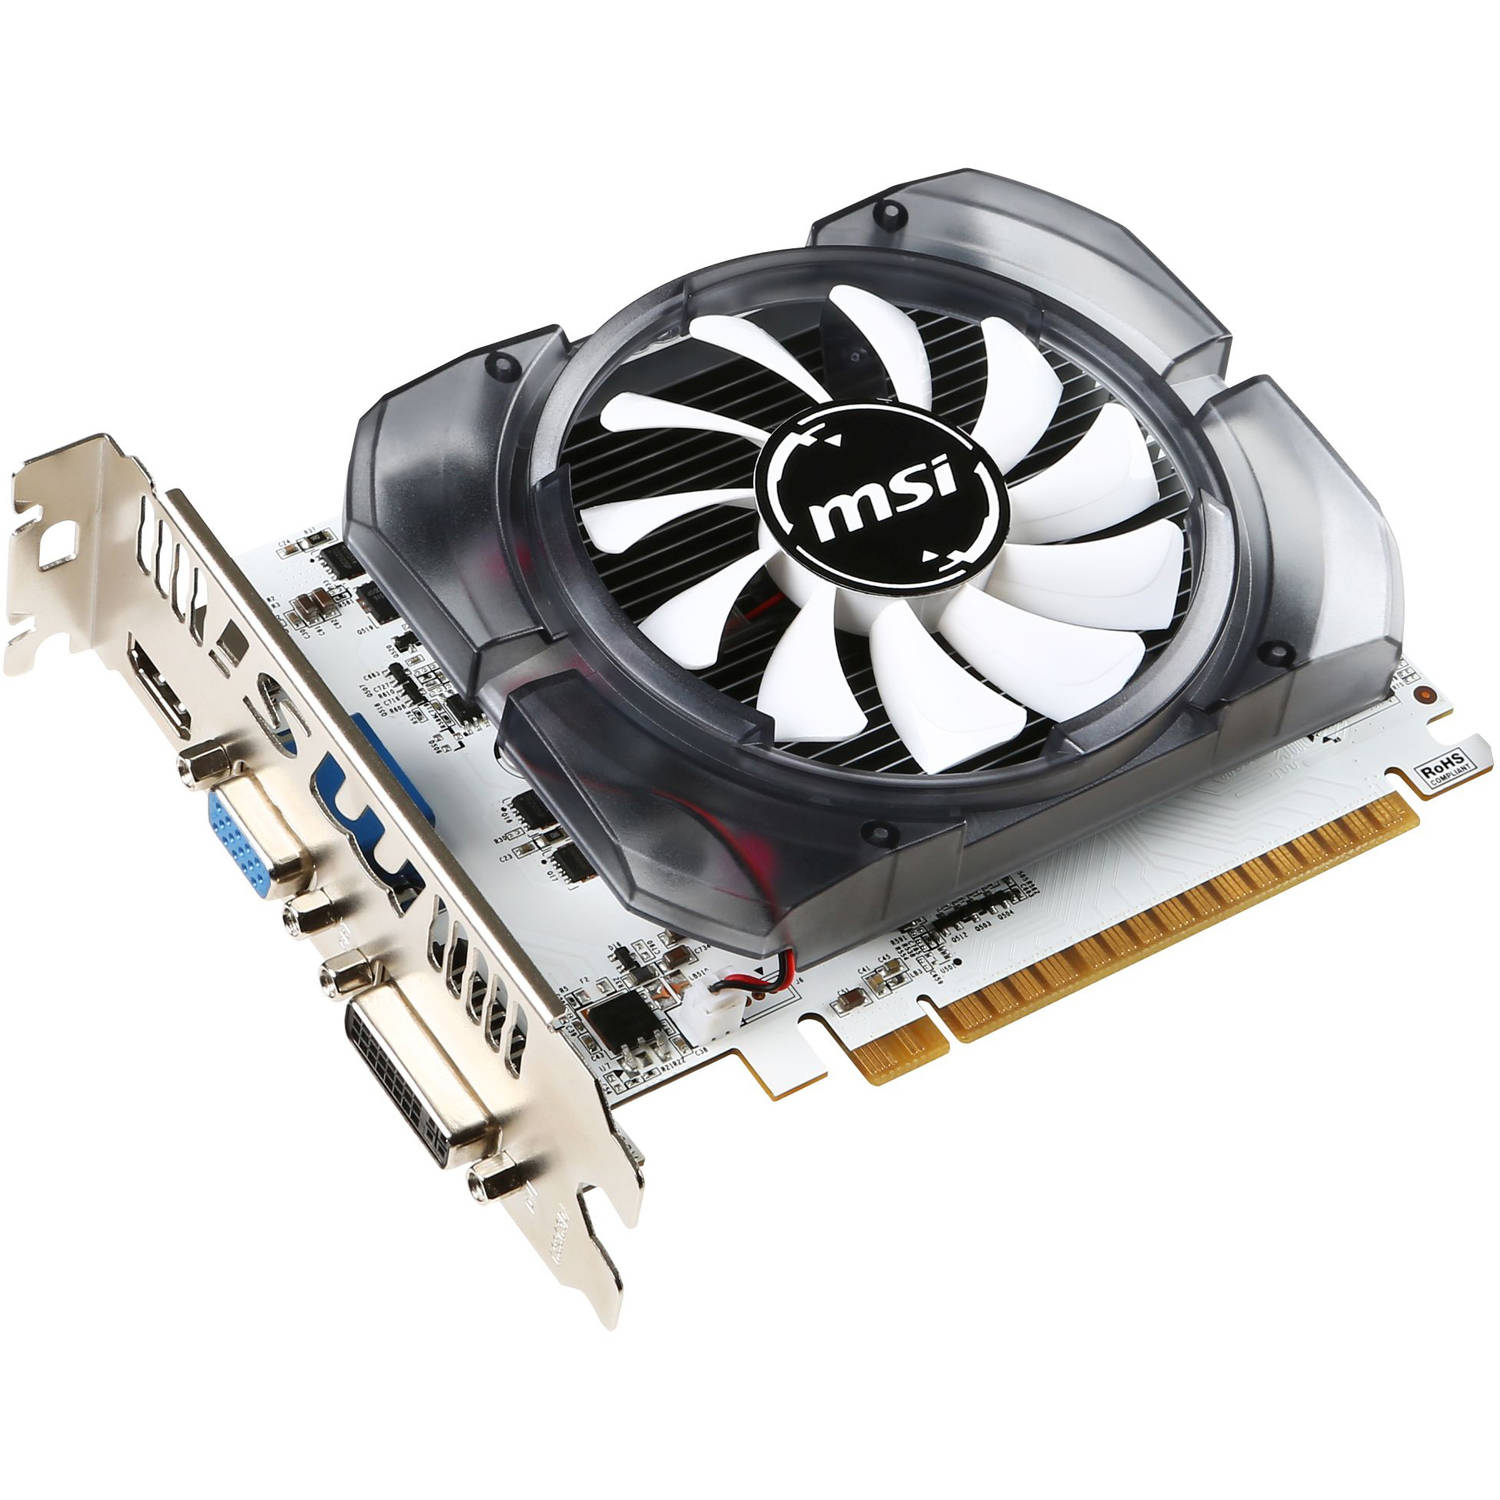 MSI Video NVIDIA GeForce GTX 730 2GB DDR3 PCI Express 2.0 Graphics Card